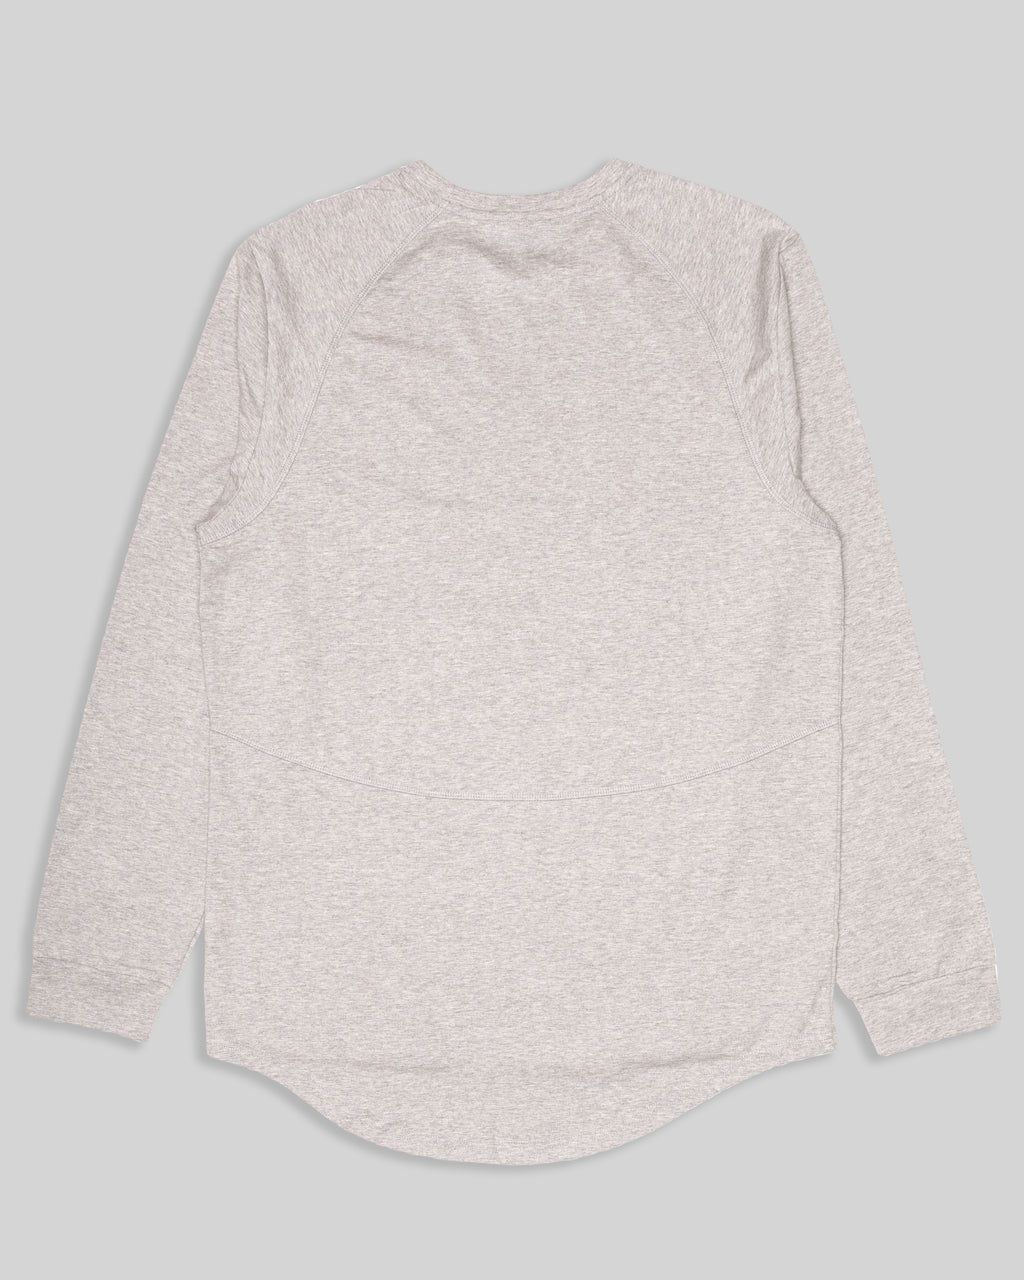 CleanDirt Luxe T - Heather